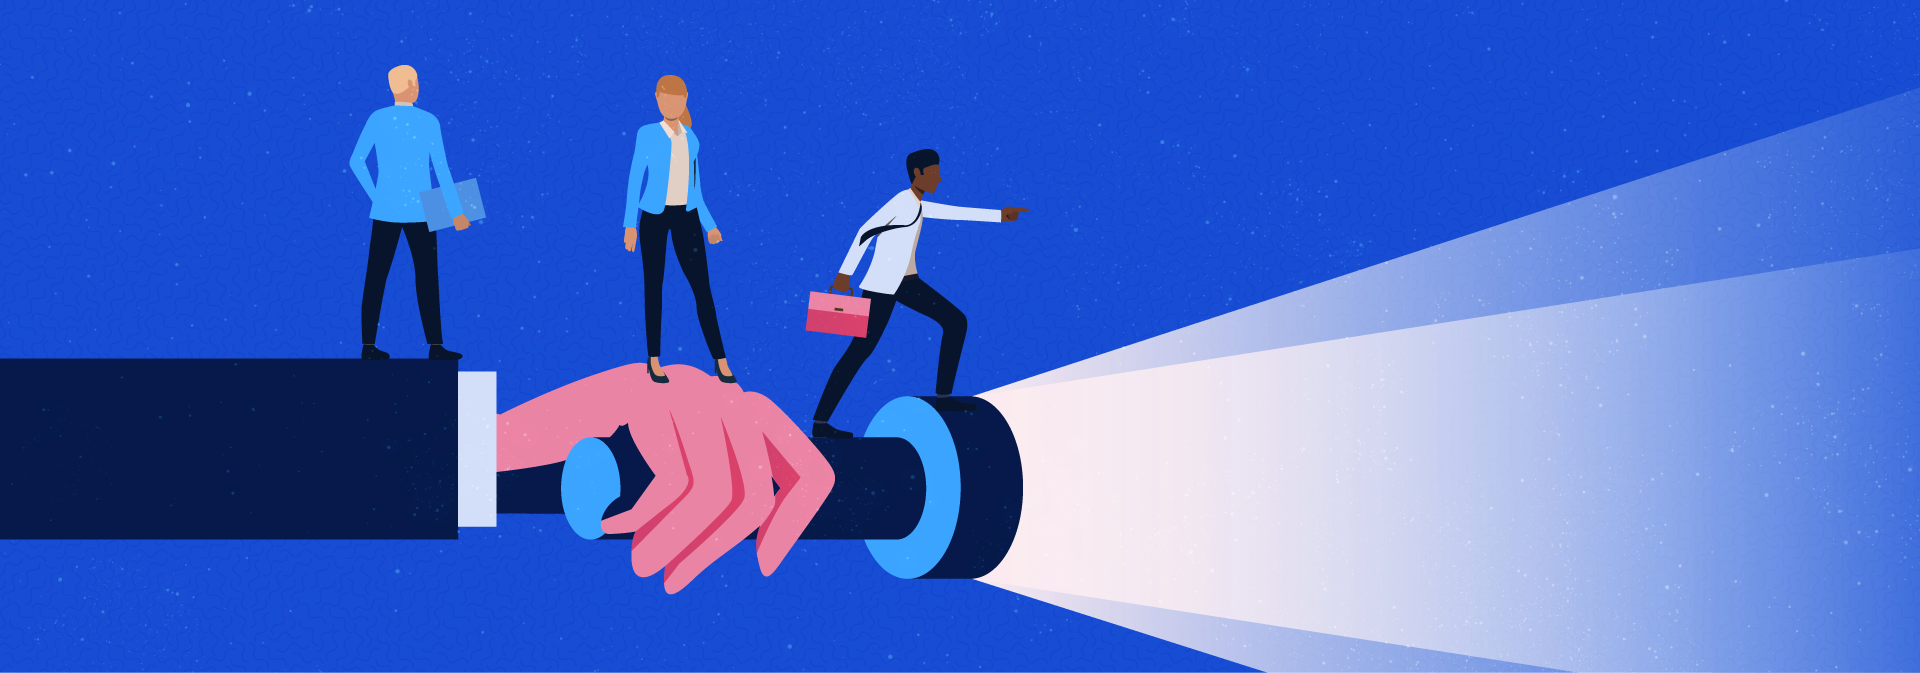 4 Key Factors to Make Your Onboarding Buddy System Work